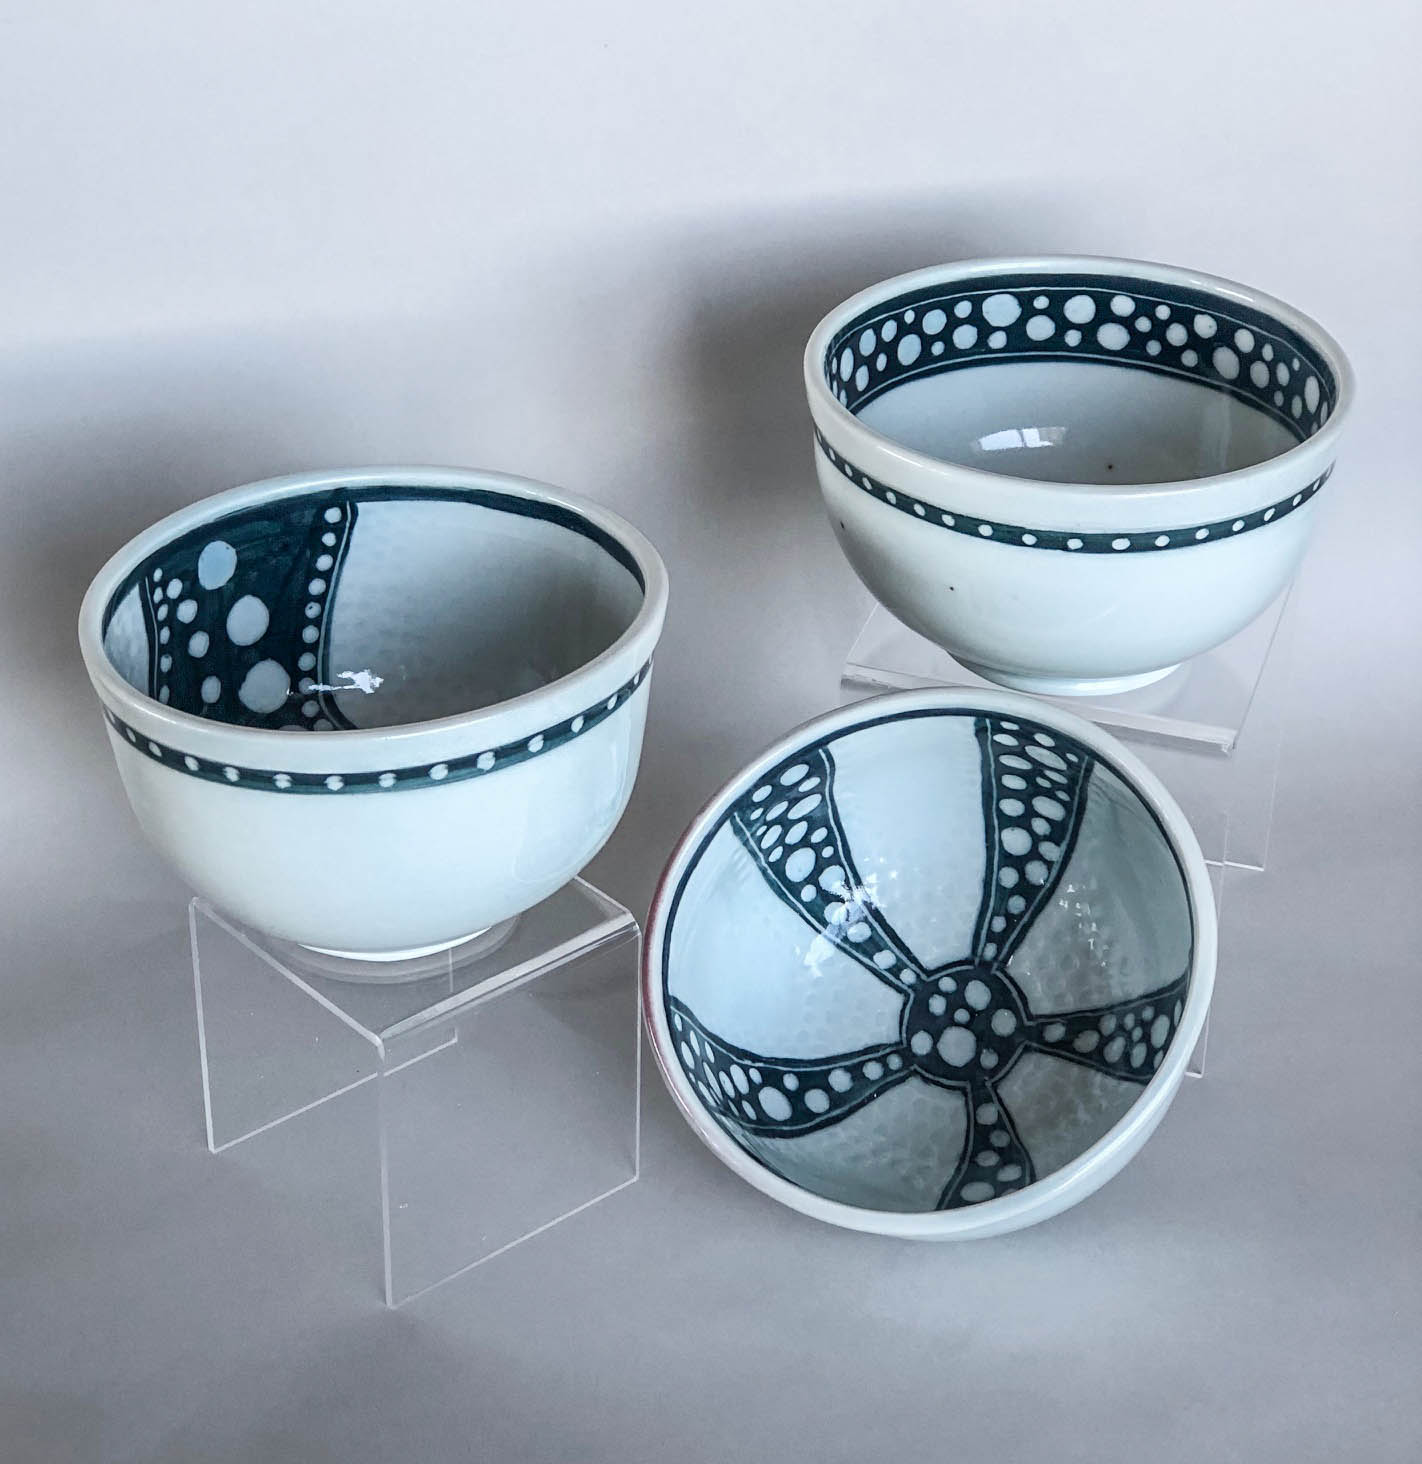 Small sgraffito bowls, hand carved slip design on wheel thrown porcelain, $42 each